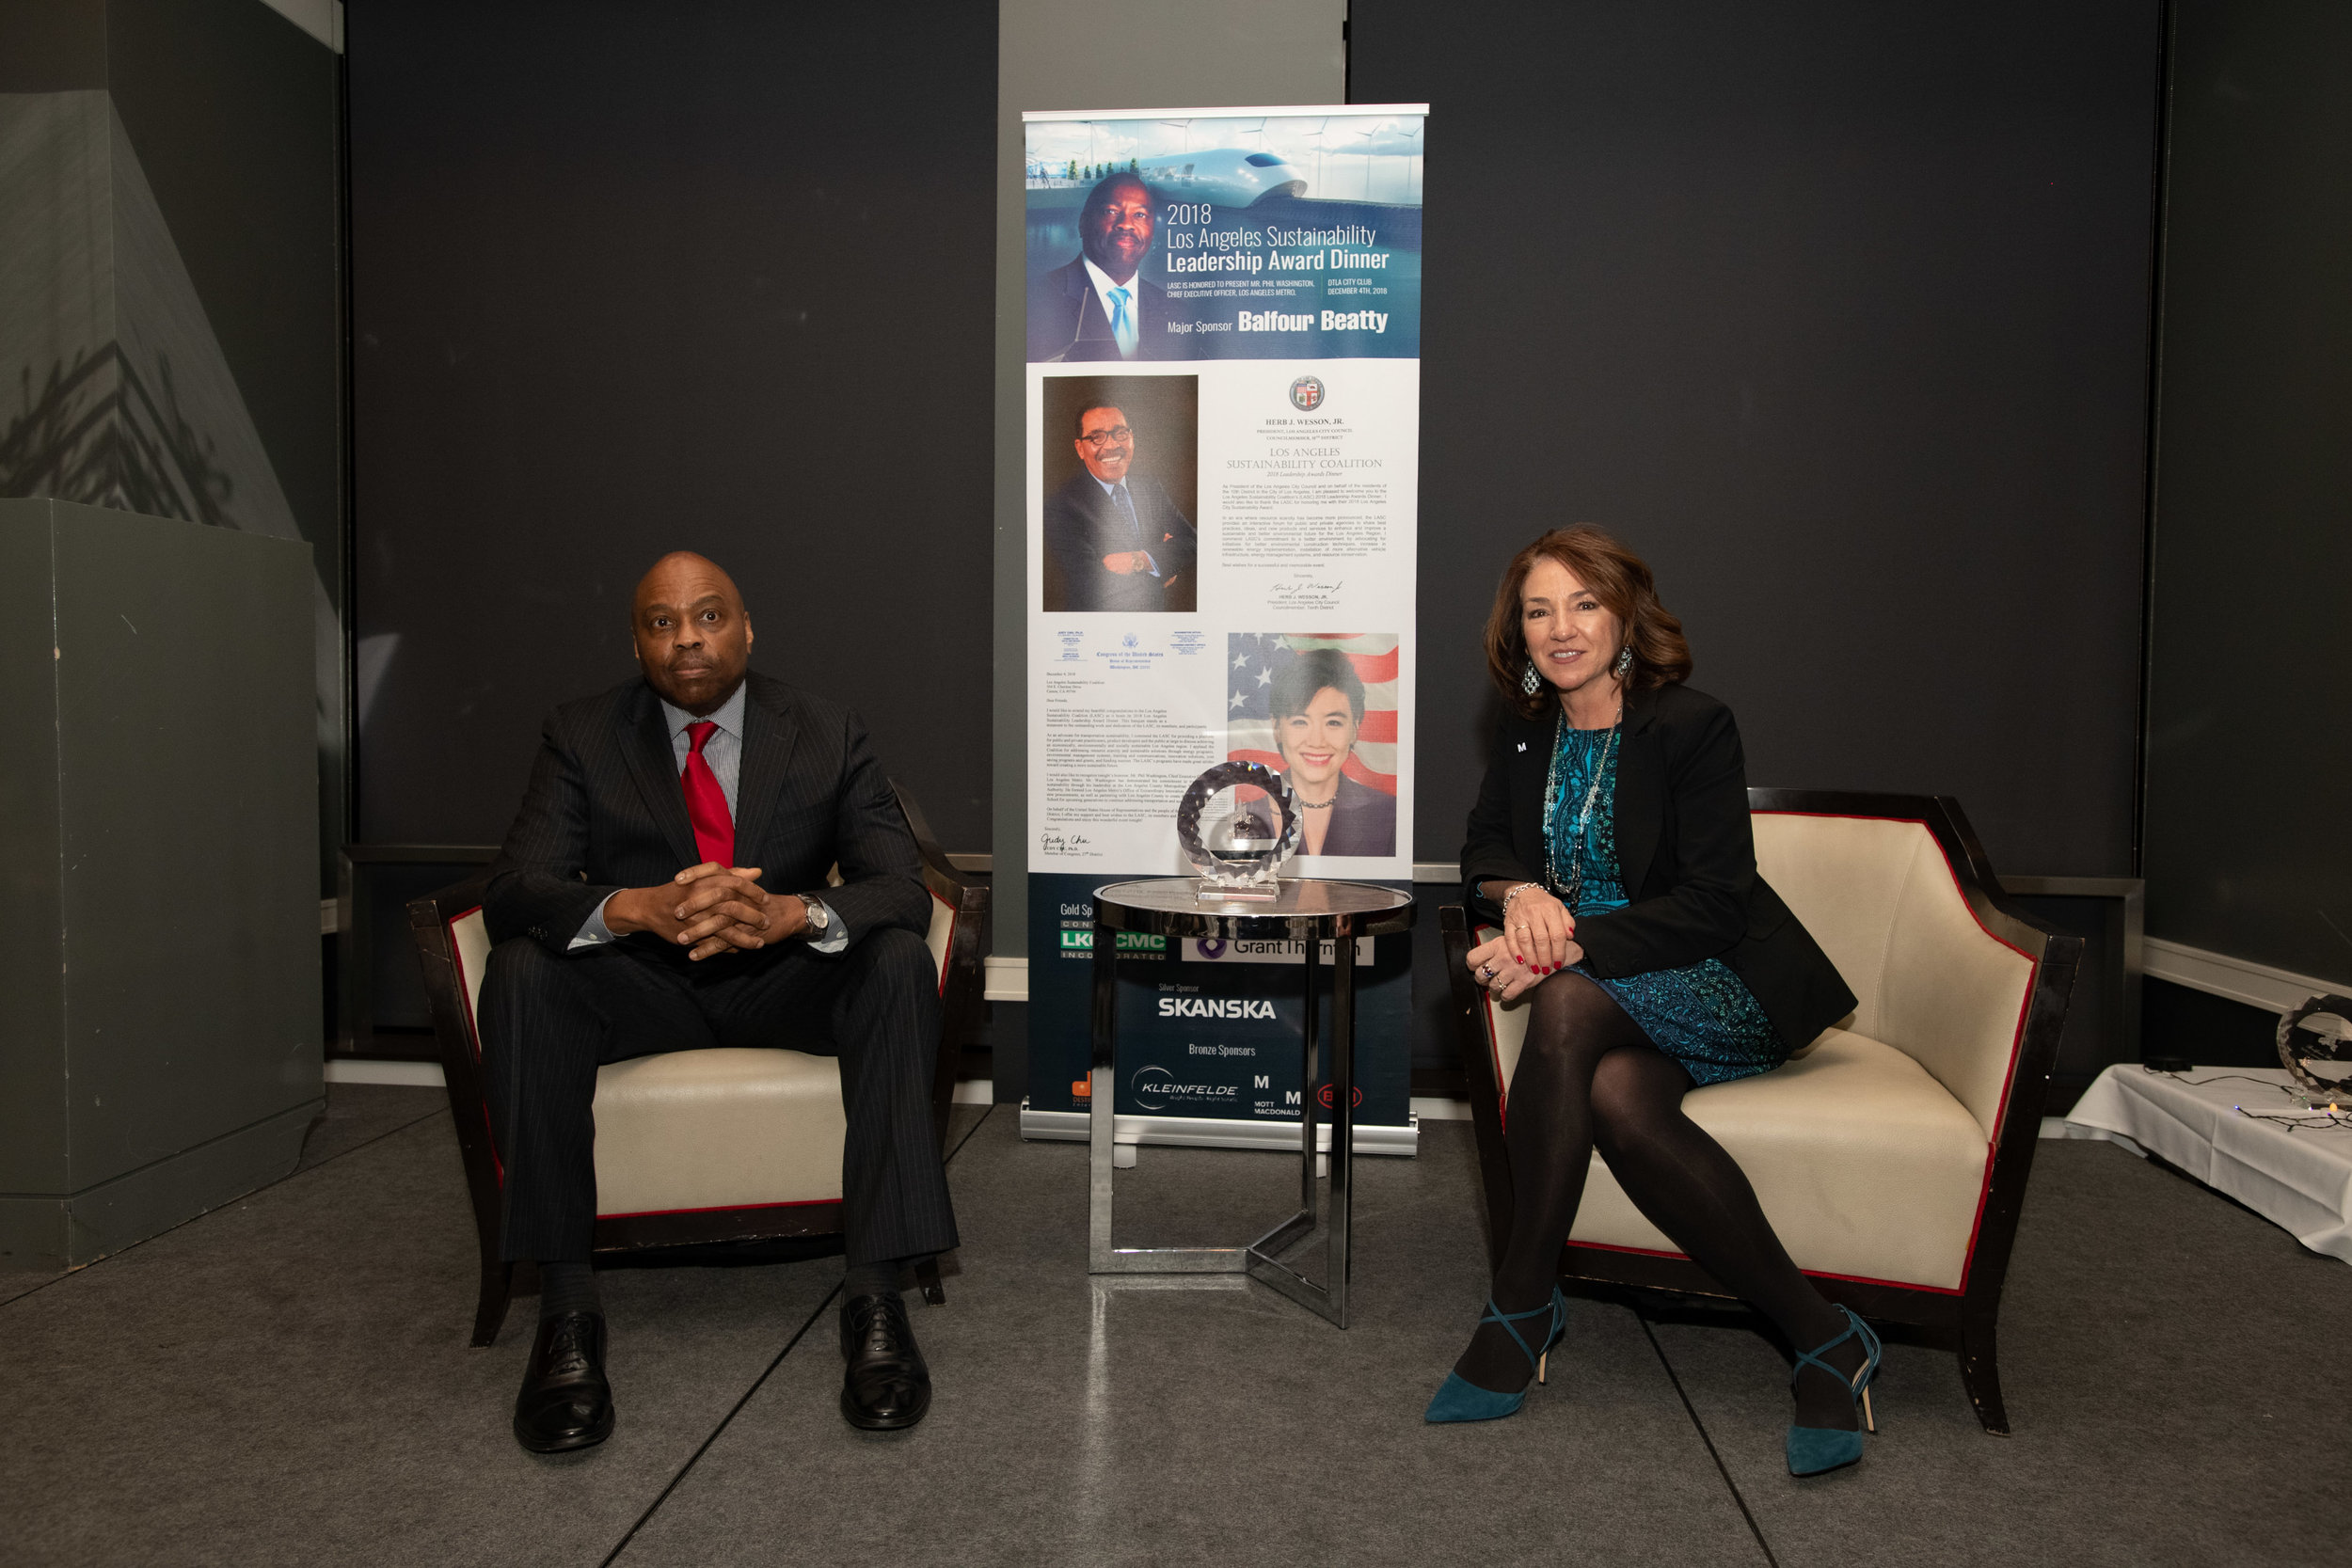 Pic 5Phil Washington (Metro Chief Executive Officer, 2018 Sustainability Leadership Award),Pauletta Tonilas (Metro Chief Communication Officer) discussing the future of Metro and Measure M